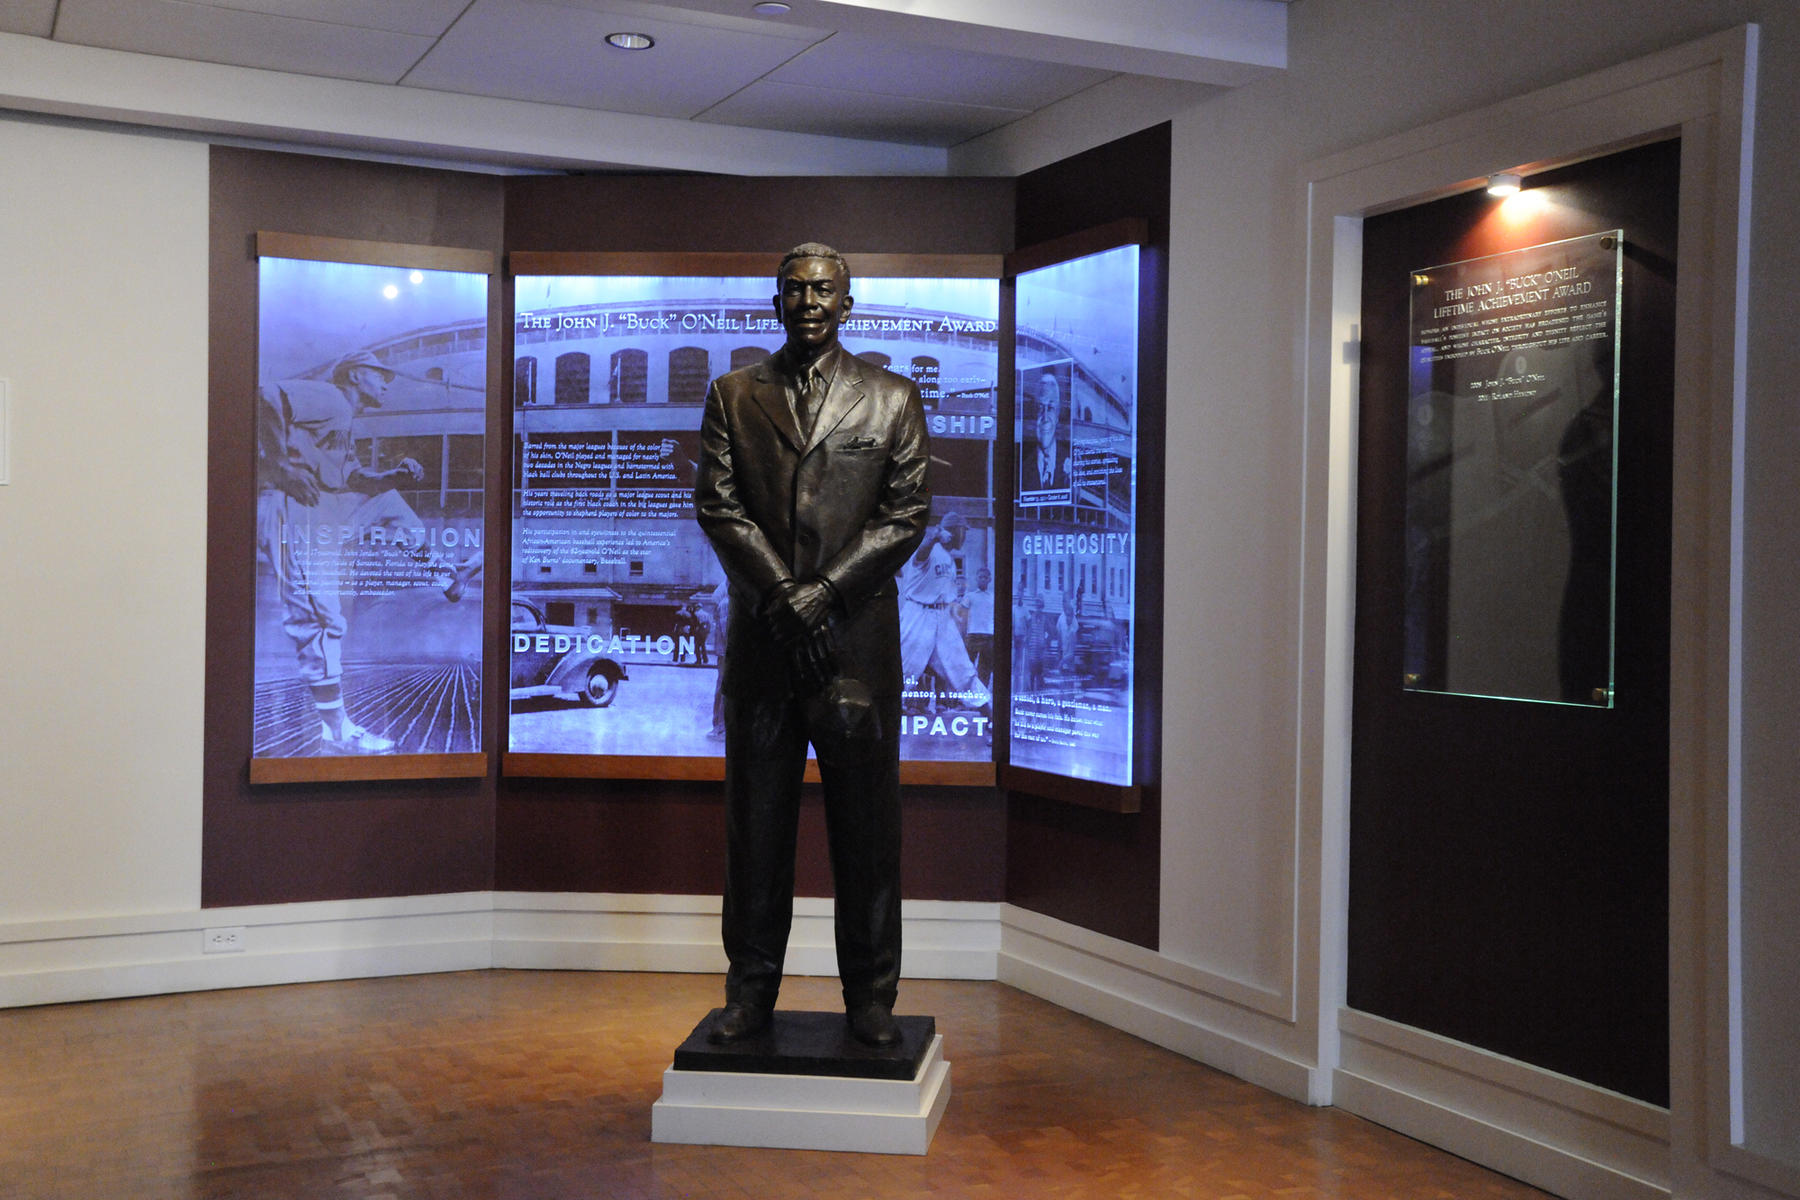 Buck O'Neil Award exhibit (Milo Stewart Jr./National Baseball Hall of Fame)